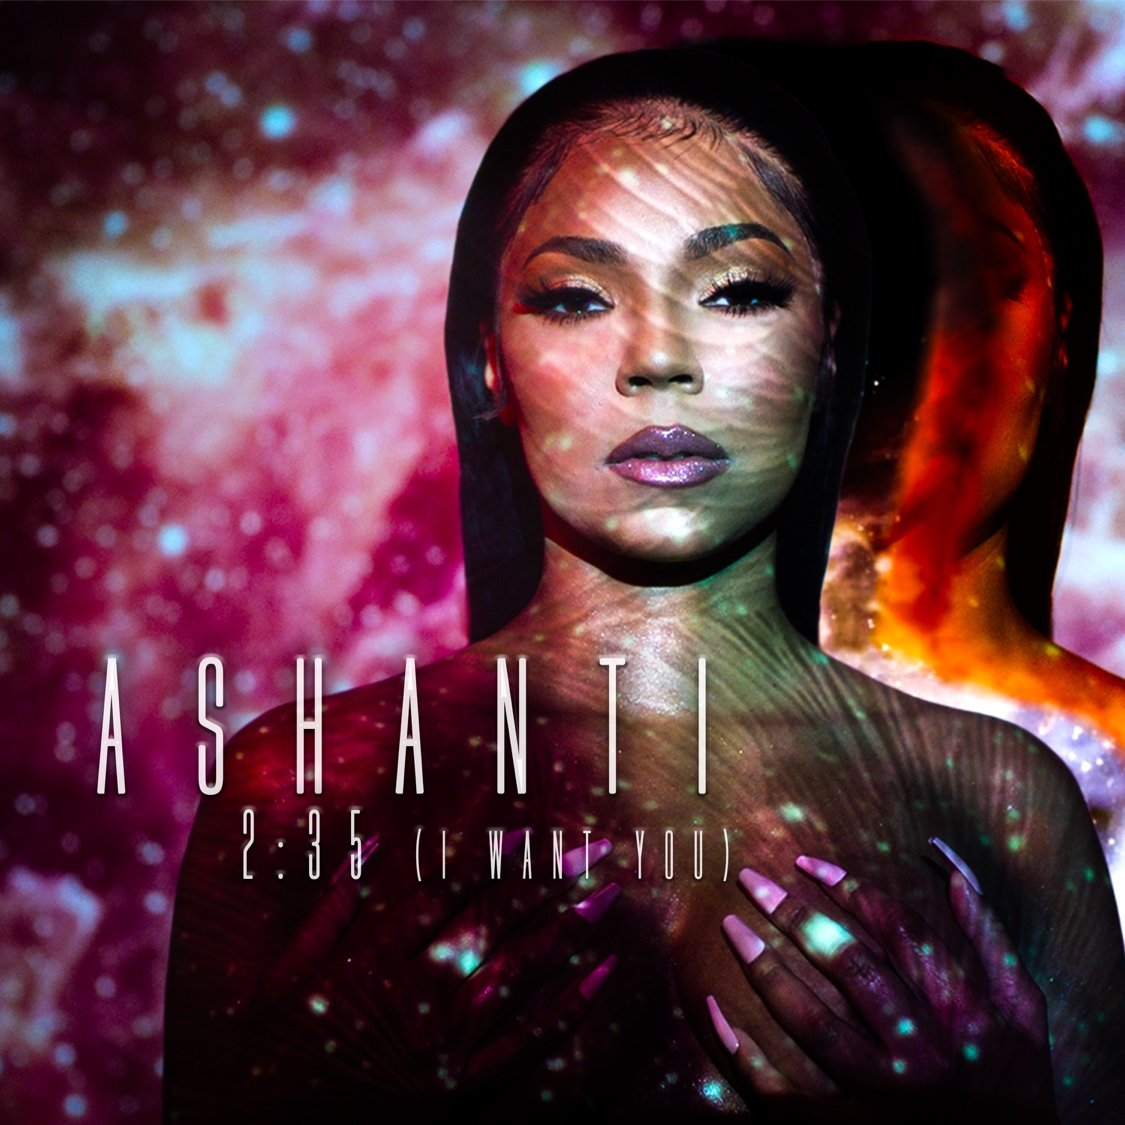 CEO of Written Entertainment NEW SINGLE 235 (I want u) AVAILABLE EVERYWHERE NOW Instagram @ashanti Snap Chat Ashantiworld